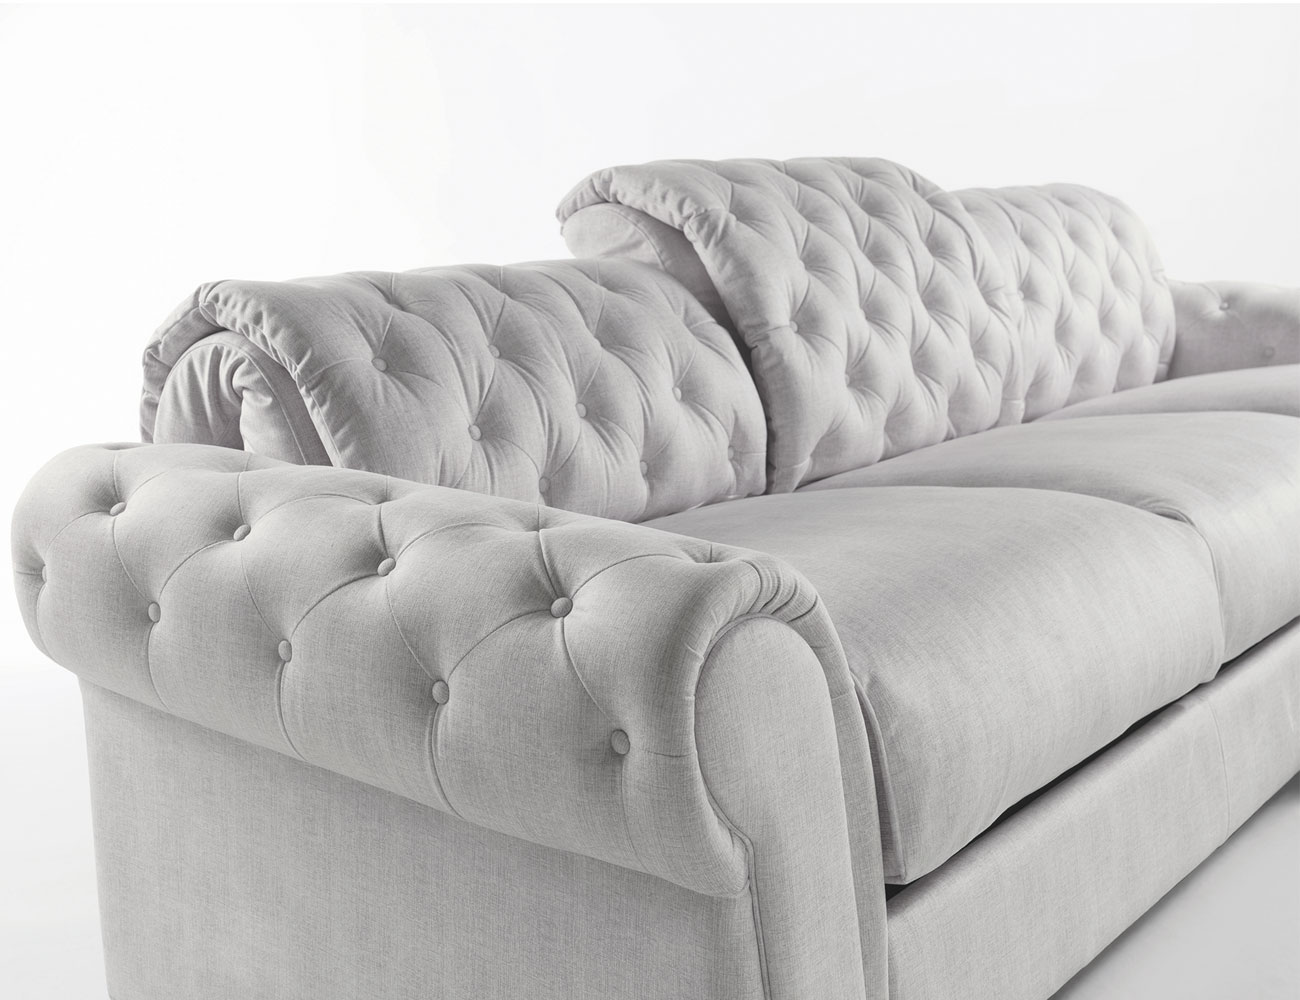 Sofa chaiselongue gran lujo decorativo capitone blanco tela 137